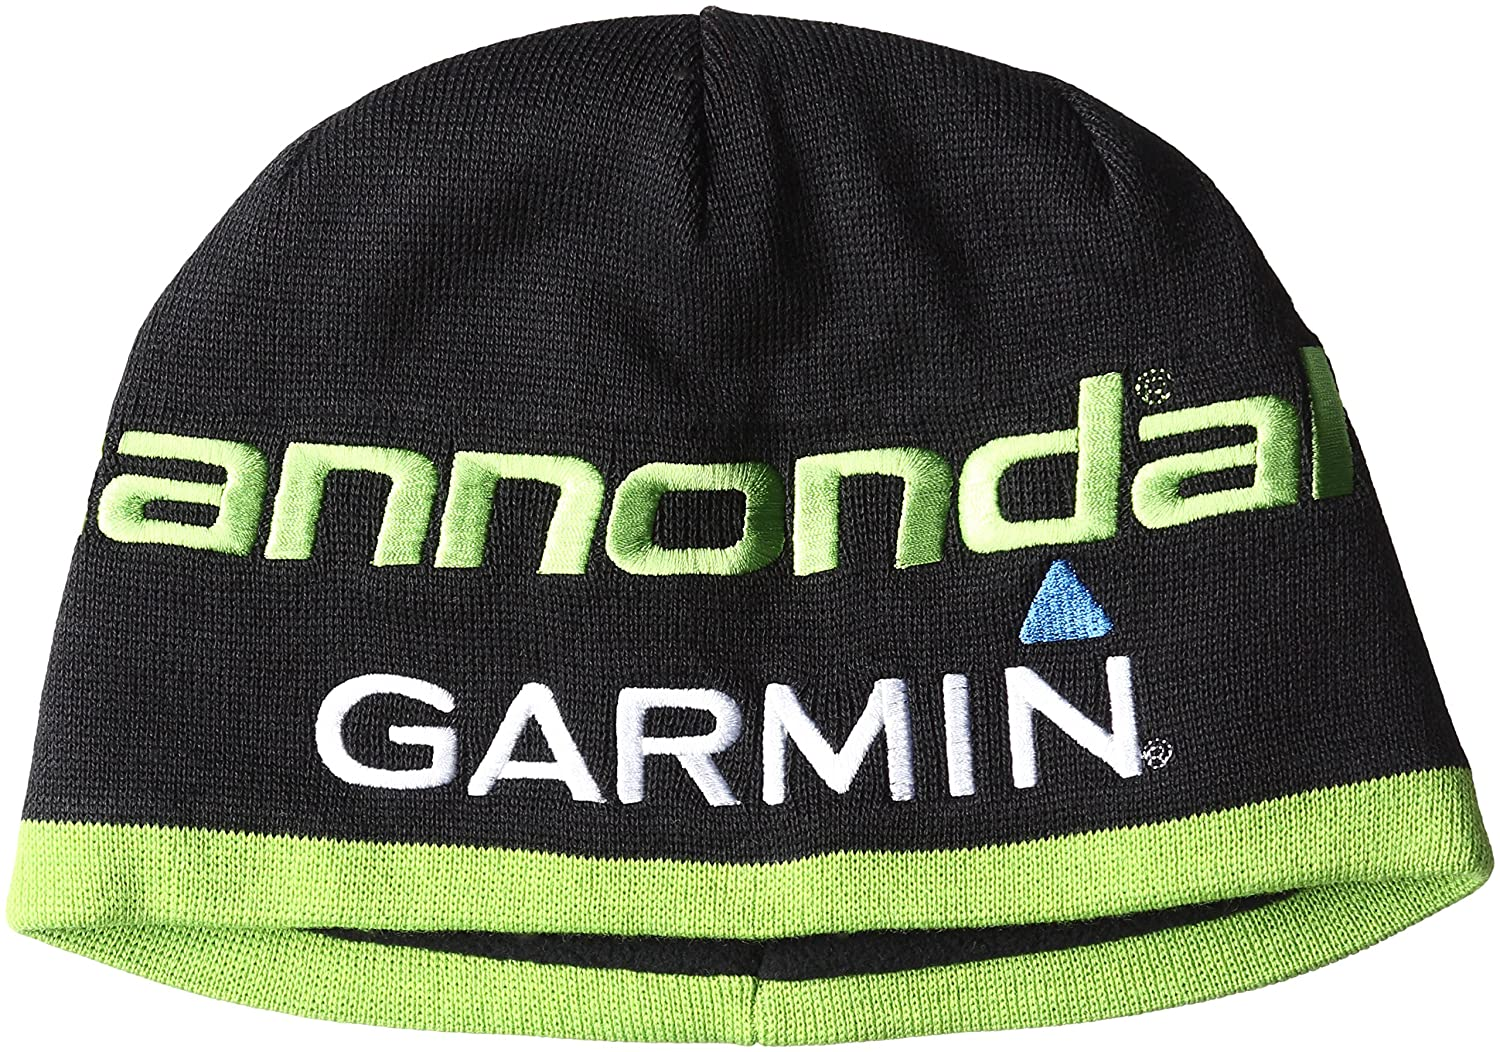 Amazon.com   Castelli Cannondale Garmin Tuque Cycling Beanie - V5031  (Black Sprint Green - One Size)   Sports   Outdoors 97f9864ec1a